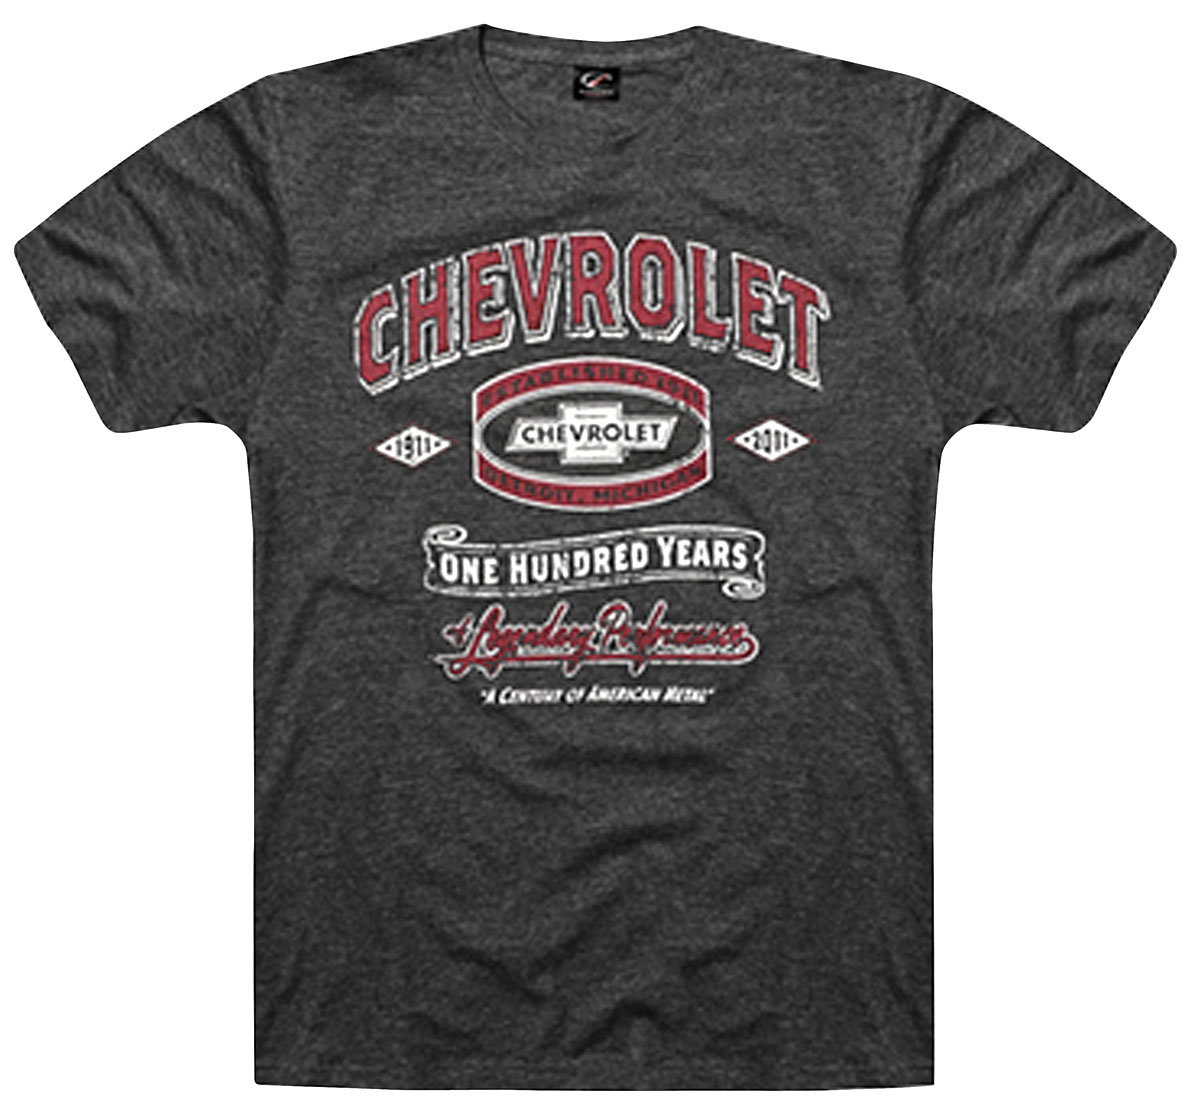 Shirt, Chevrolet 100 Years, Charcoal